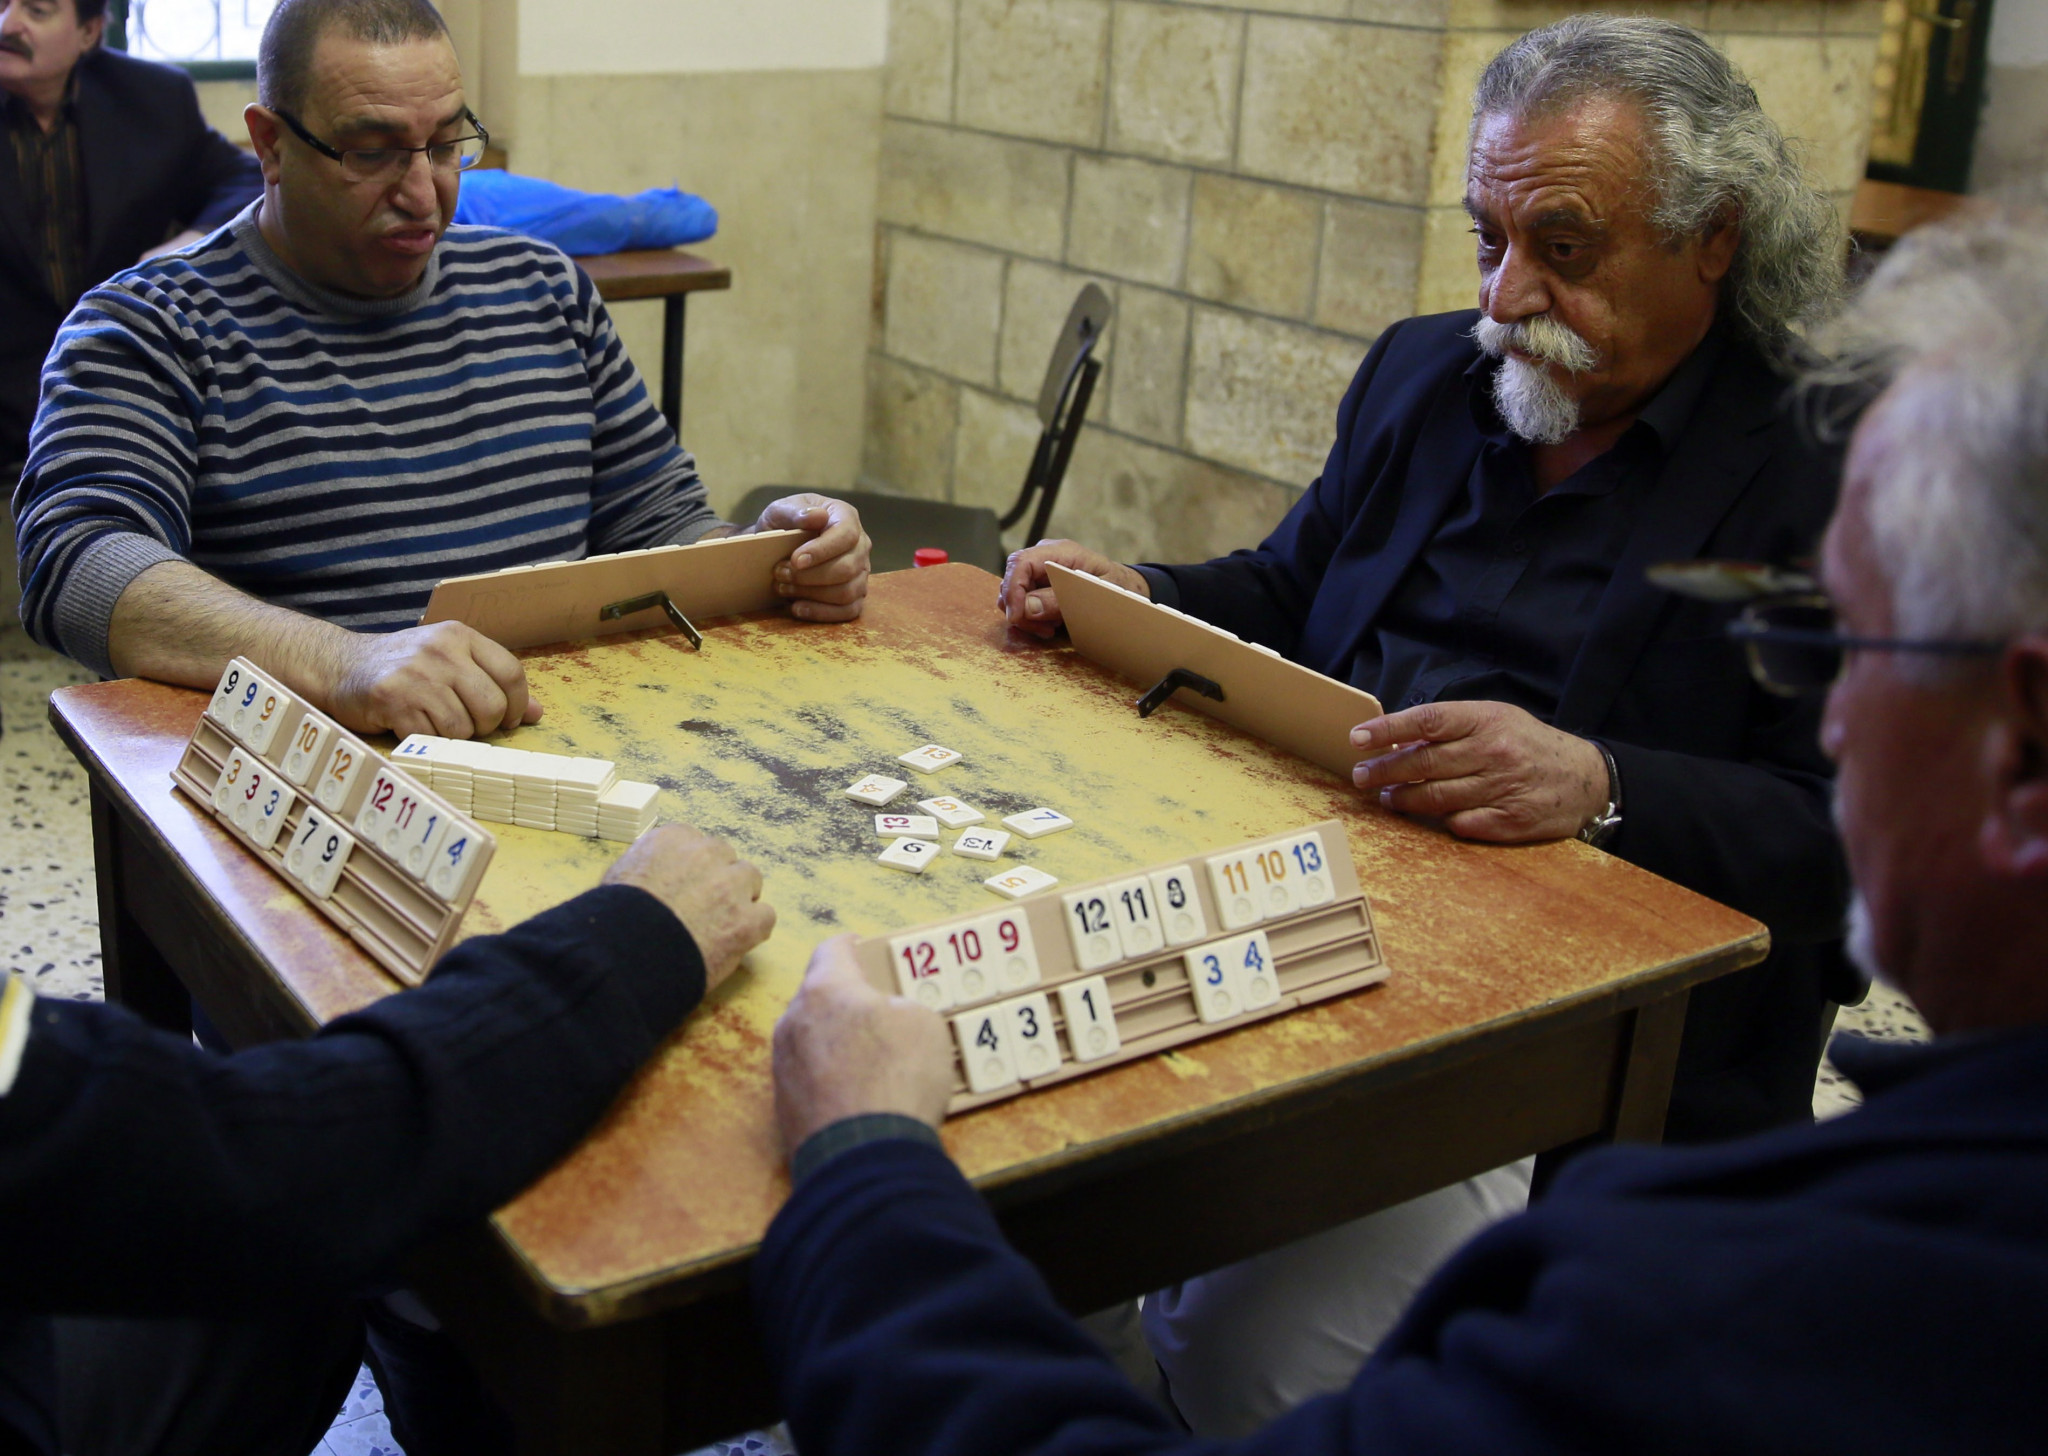 Rummikub has been suggested as an activity for the elderly ©Getty Images